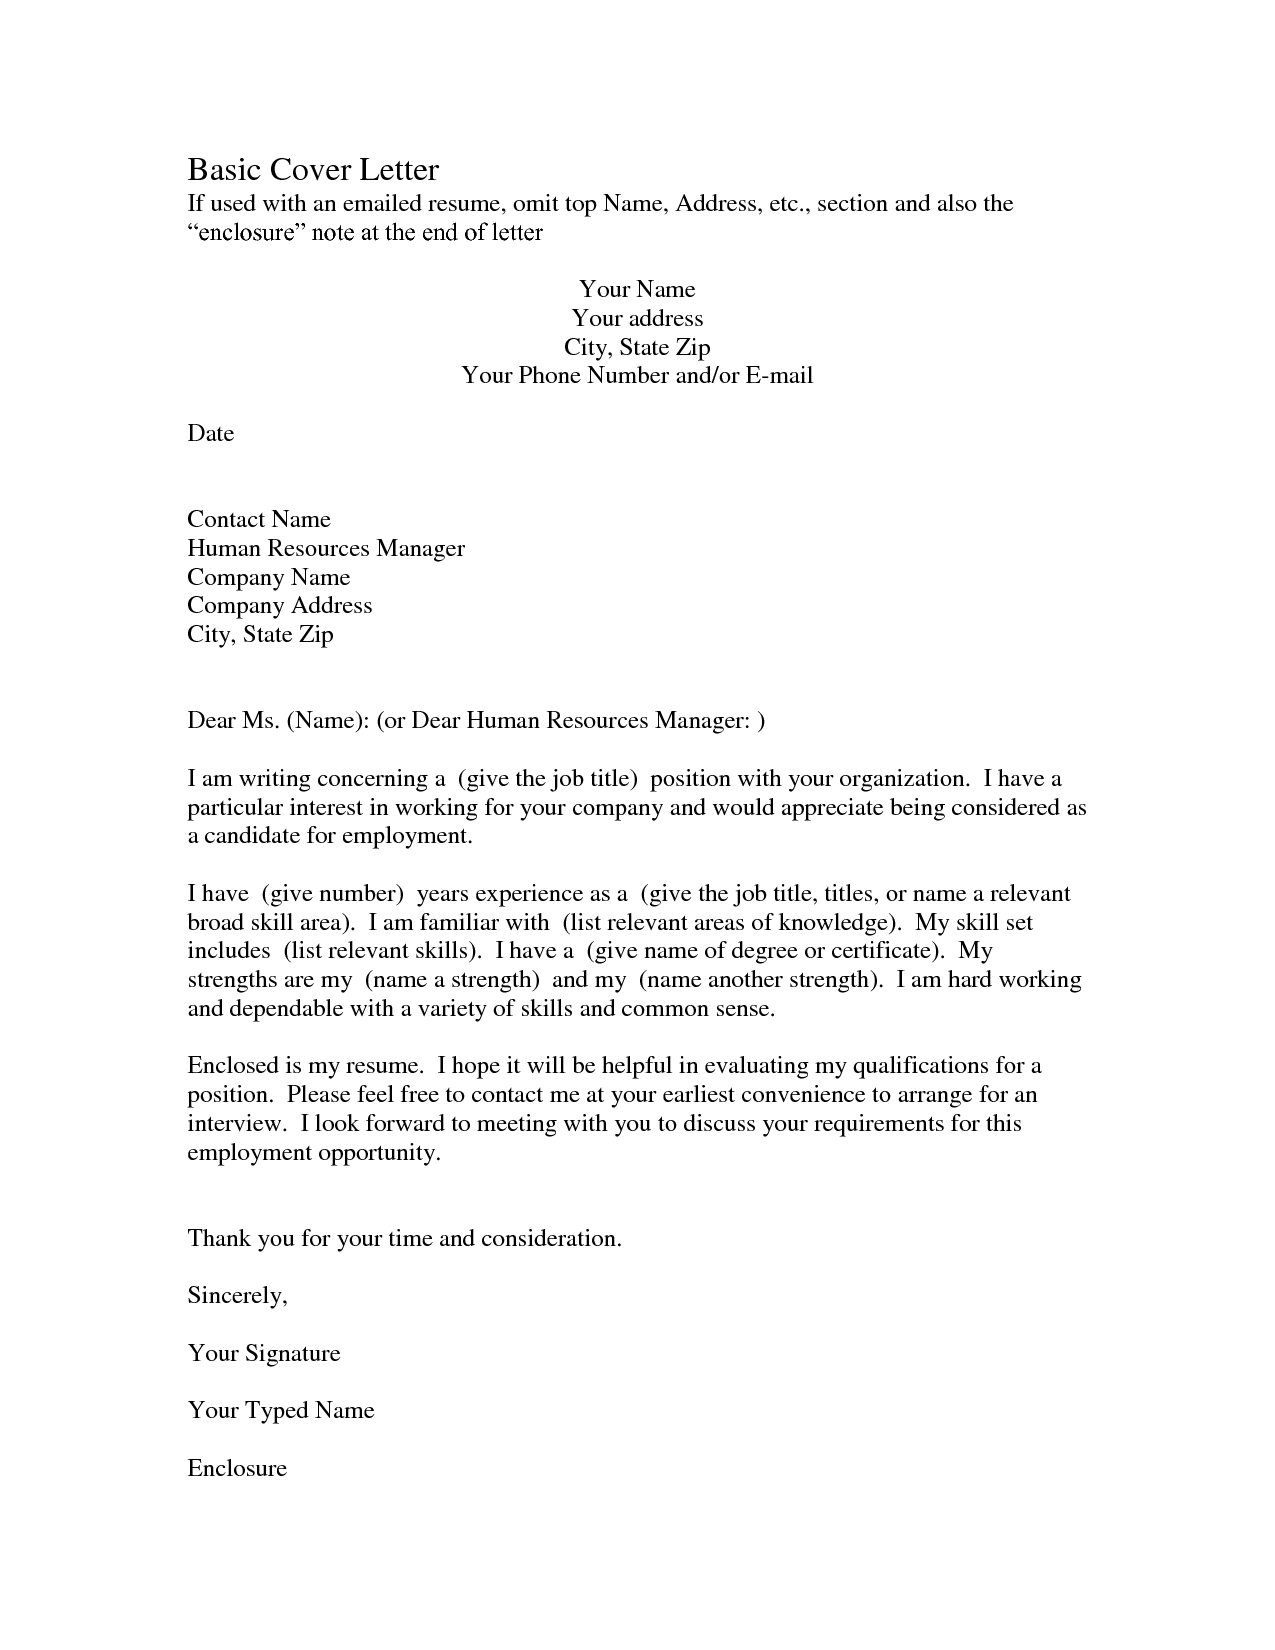 covering letter example simple cover letter examplesimple